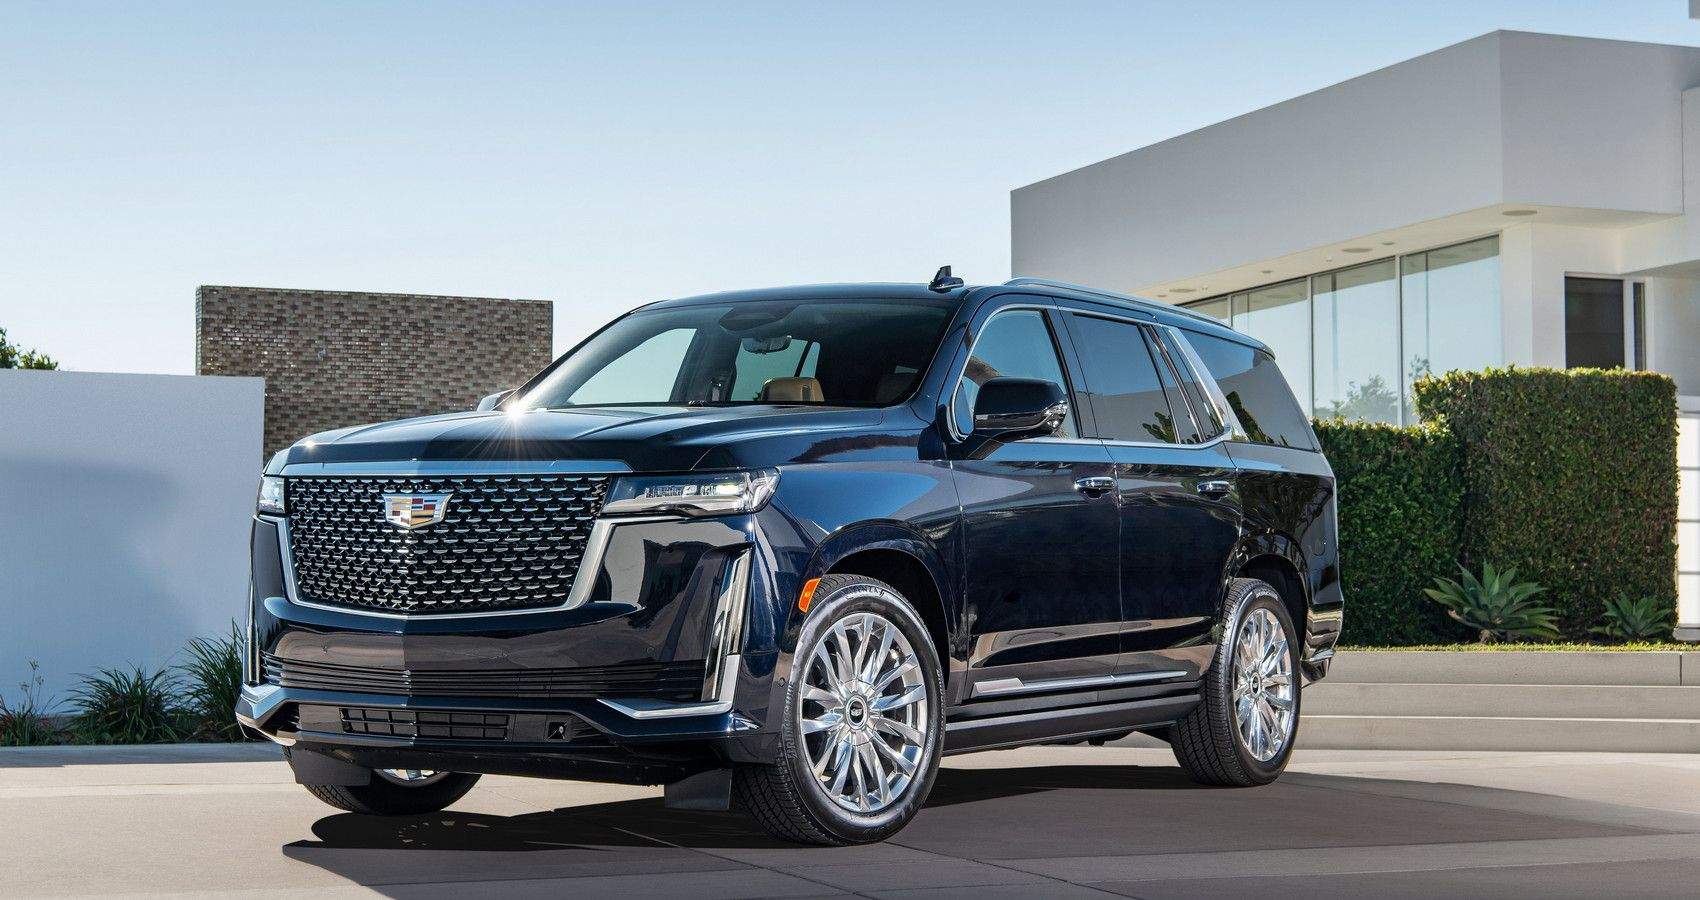 5 Best American Luxury Vehicles (5 Asian Luxury Cars We'd Rather Own)